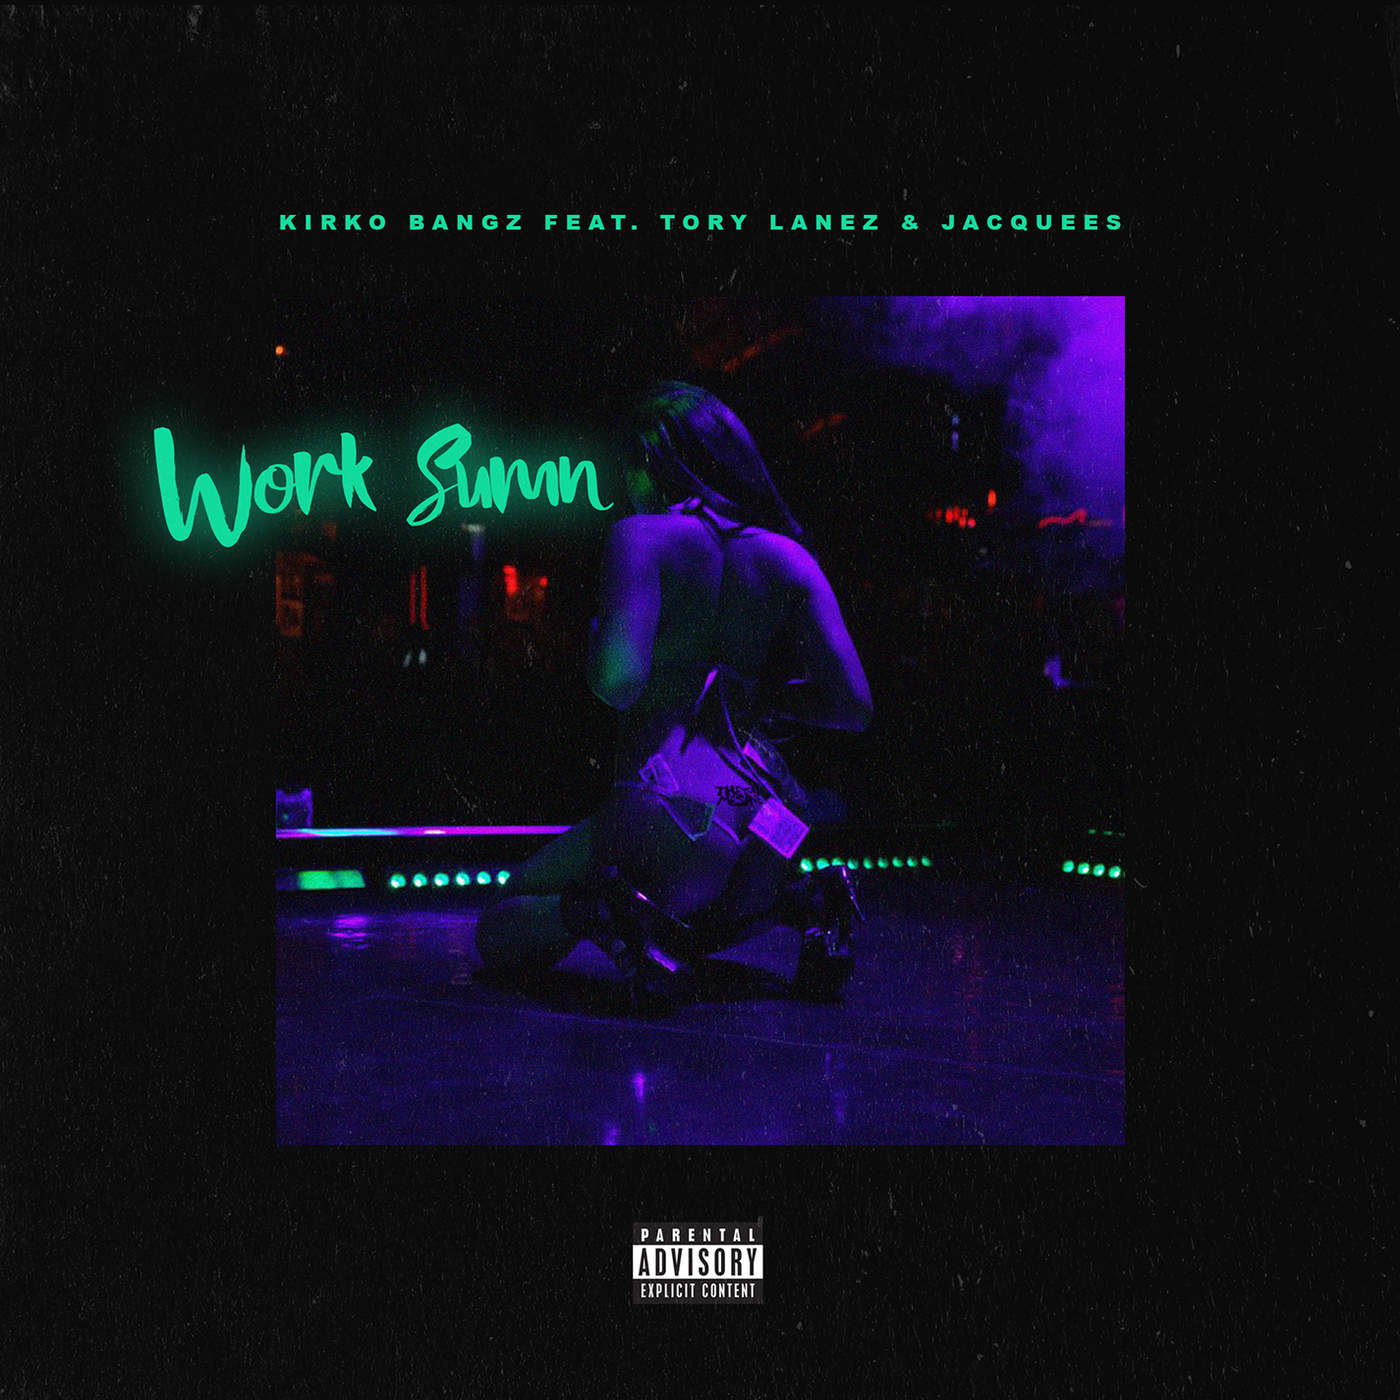 KIRKO BANGZ FEAT. TORY LANEZ AND JACQUEES | WORK SUMN [AUDIO]